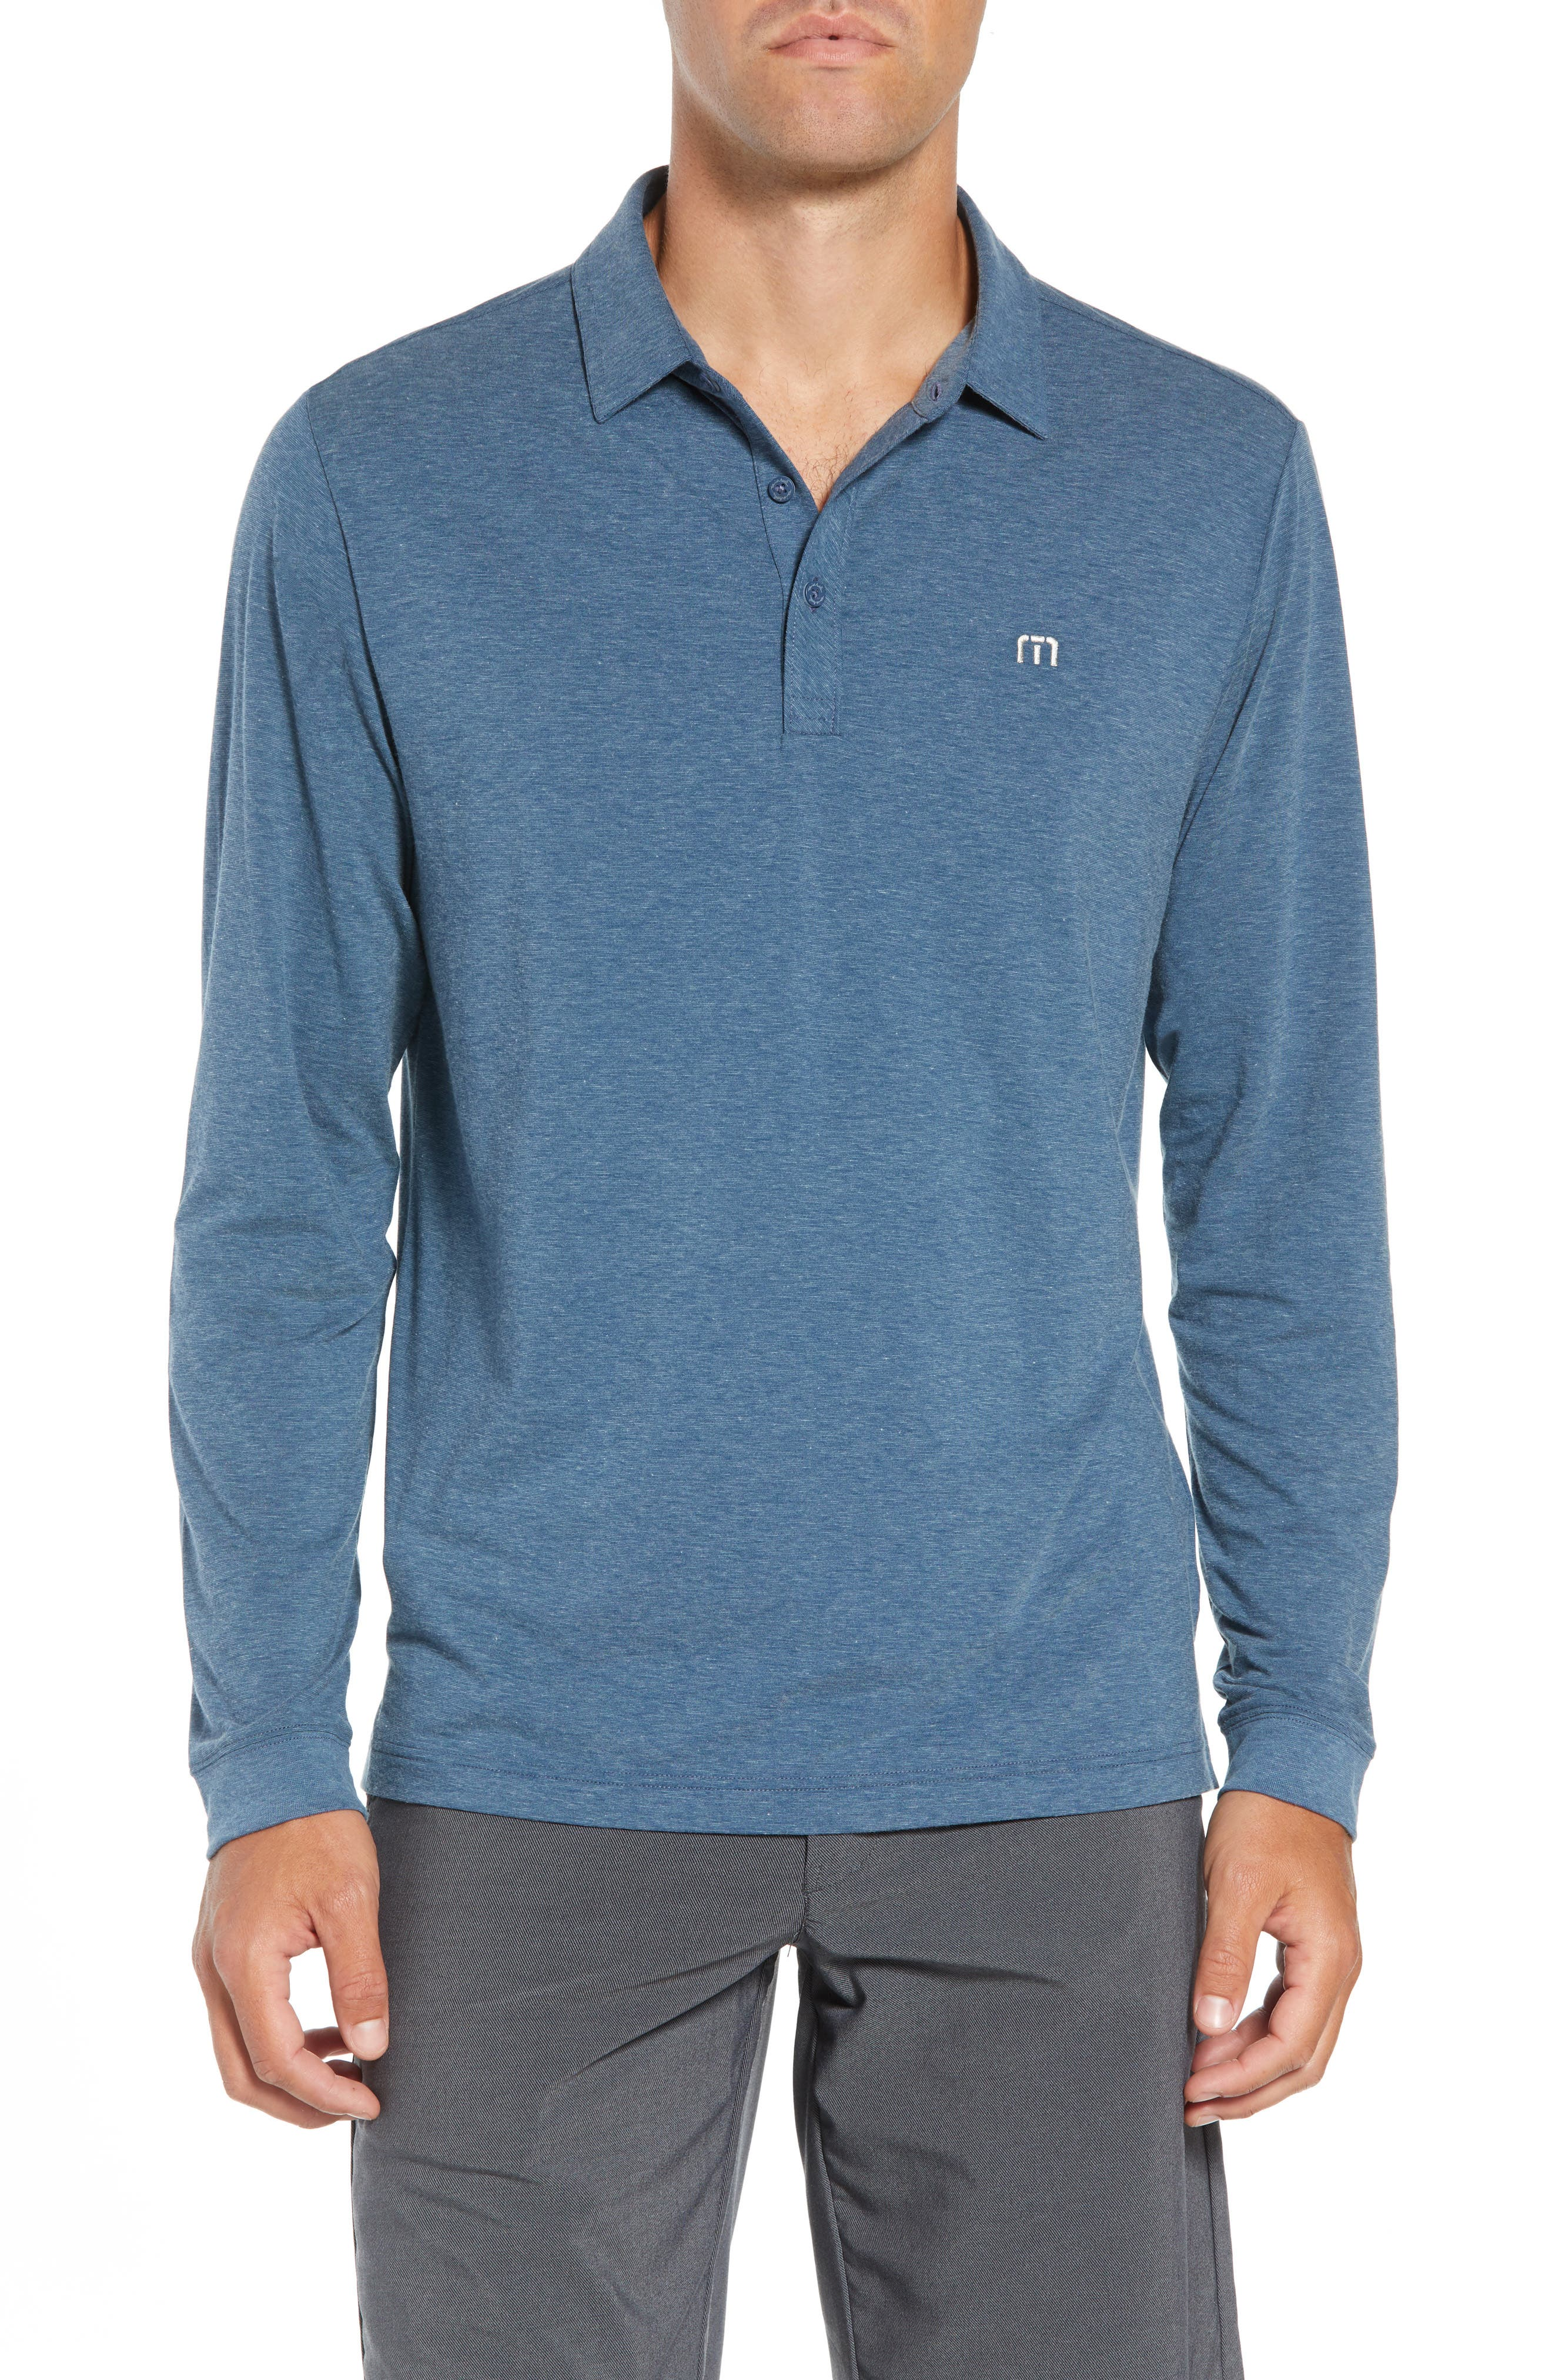 Backup Plan Regular Fit Polo,                         Main,                         color, TRADEWINDS/ BLUE WING TEAL